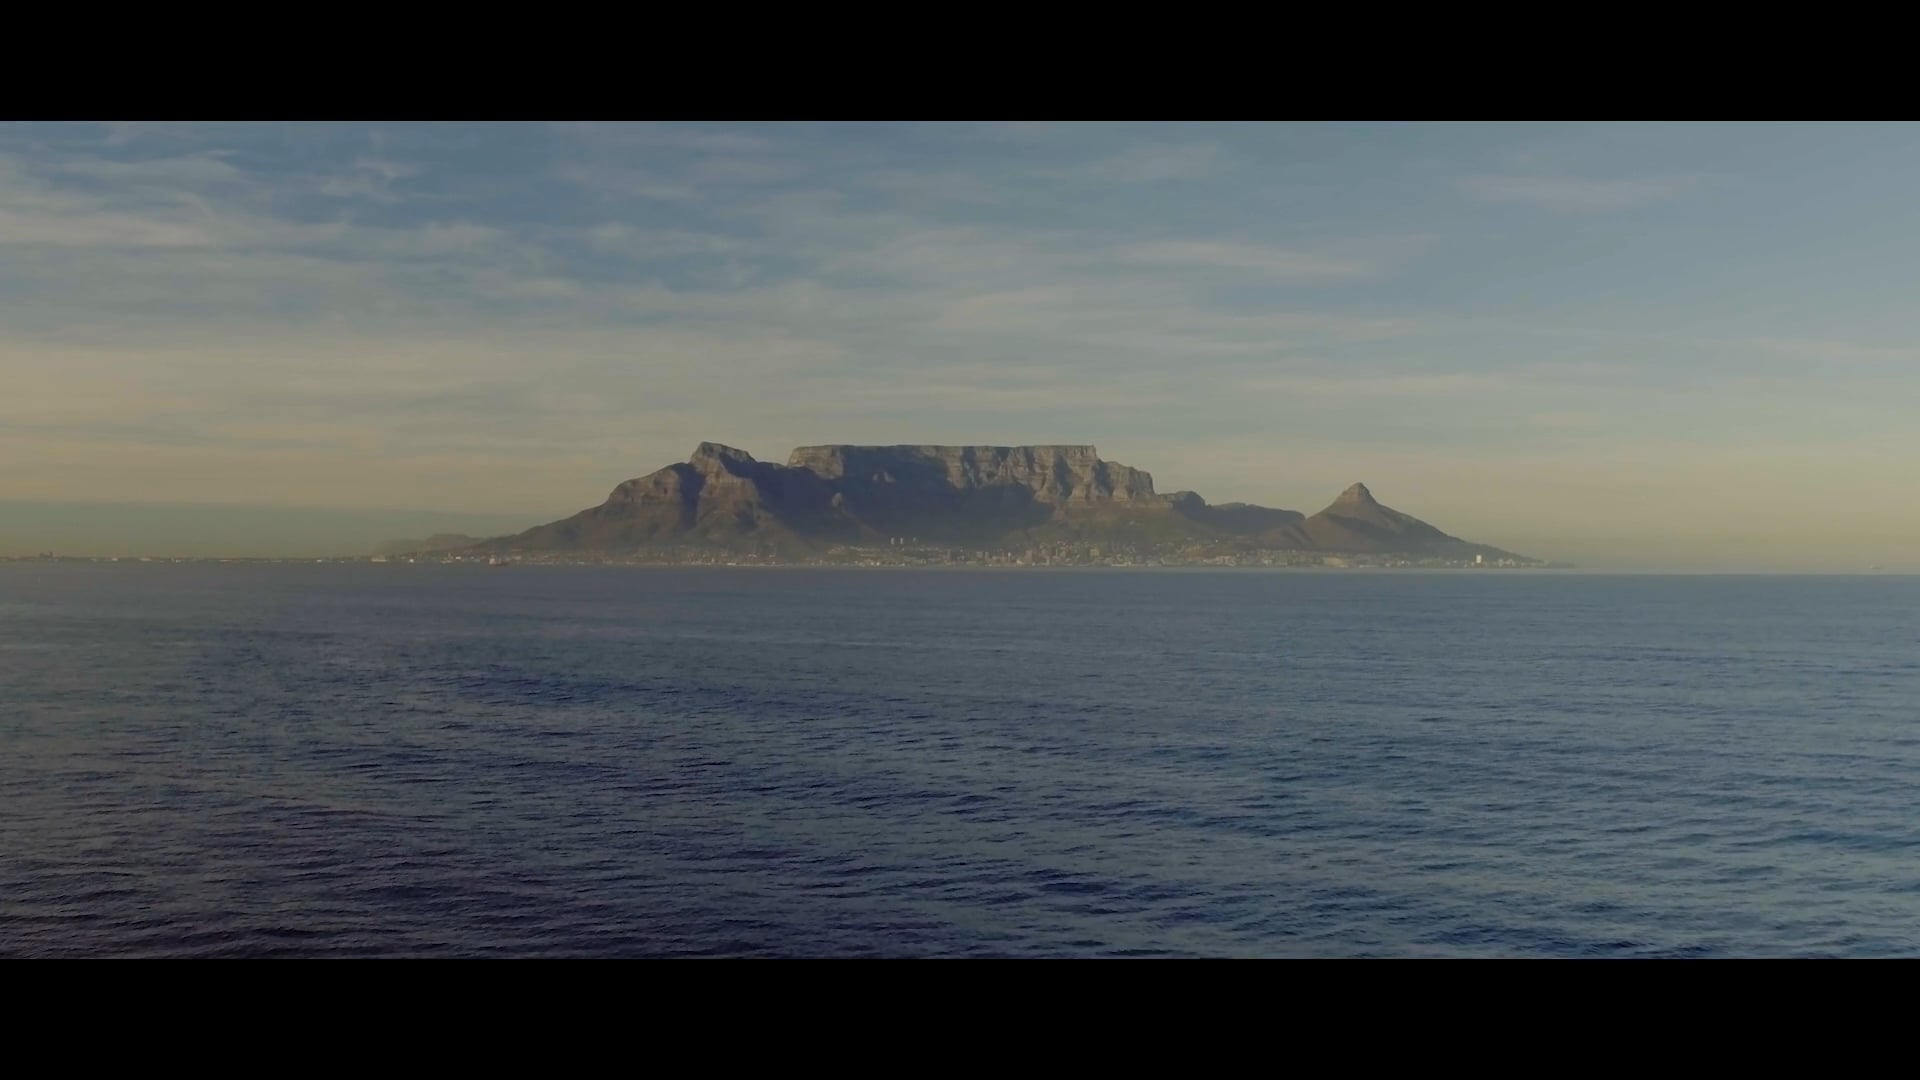 The Table Mountain Cableway